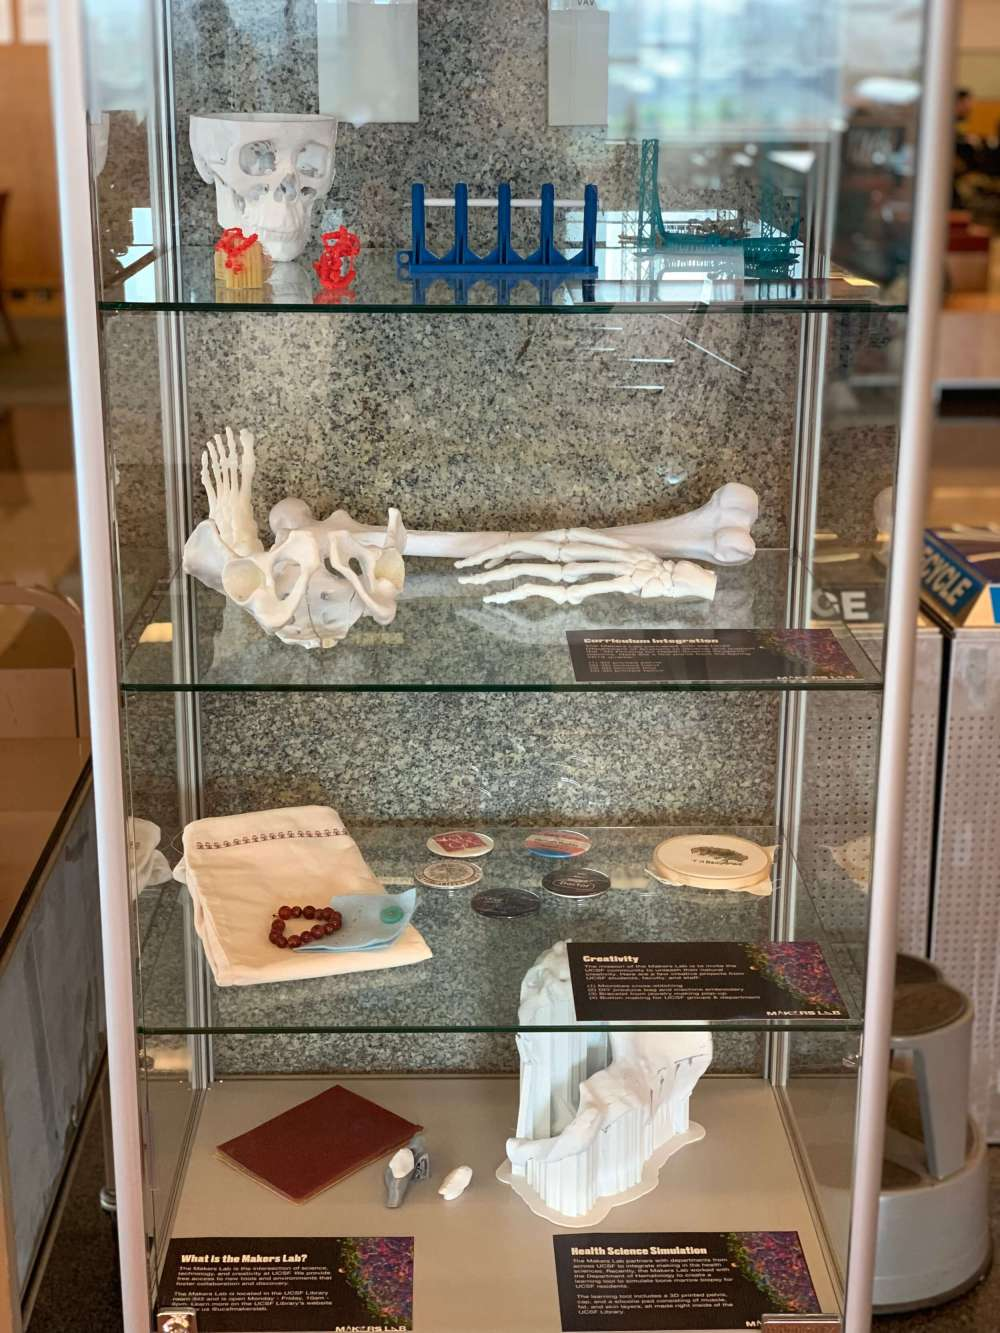 Makers lab project display case